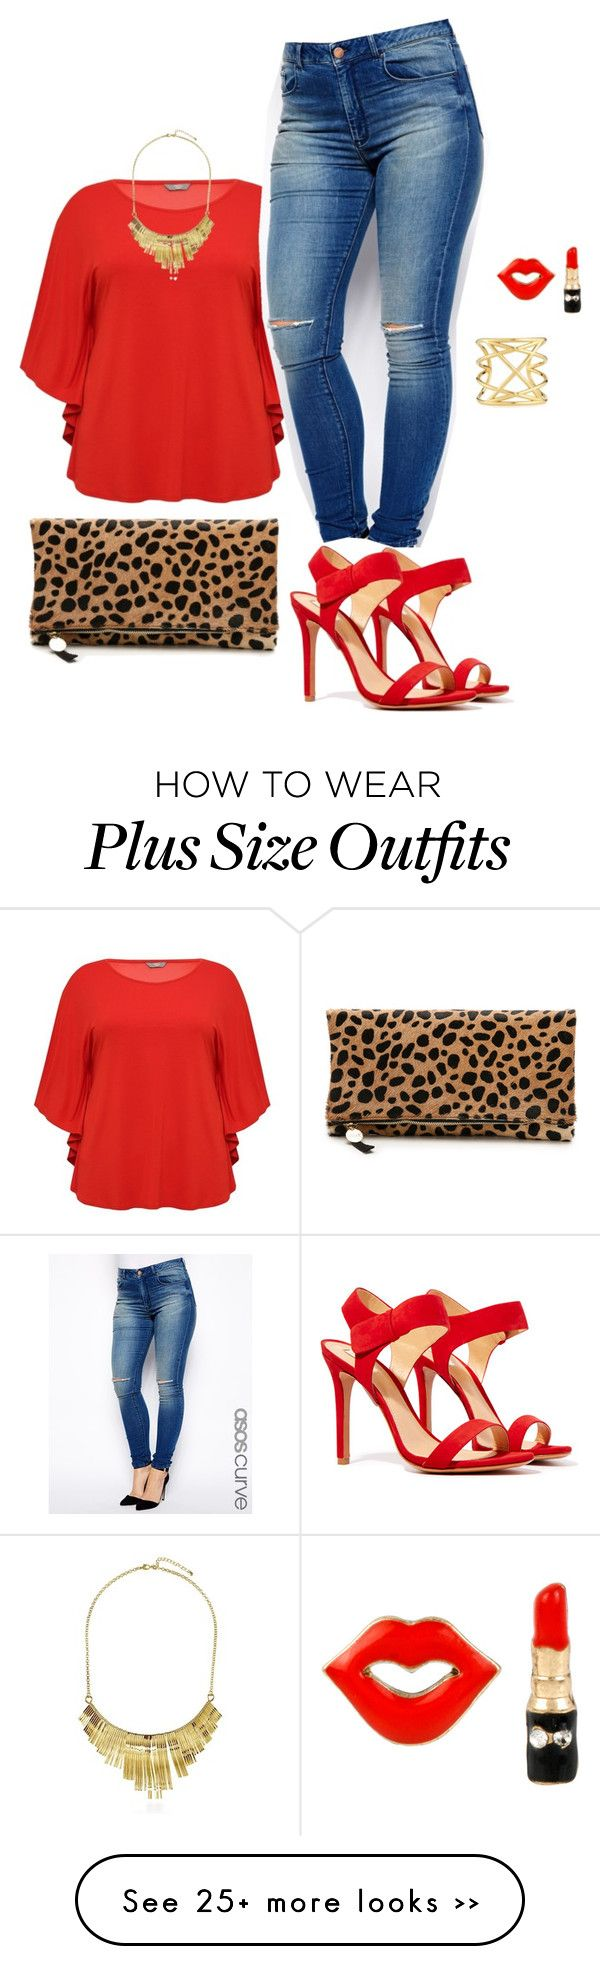 """""""plus size diva style"""" by kristie-payne on Polyvore"""